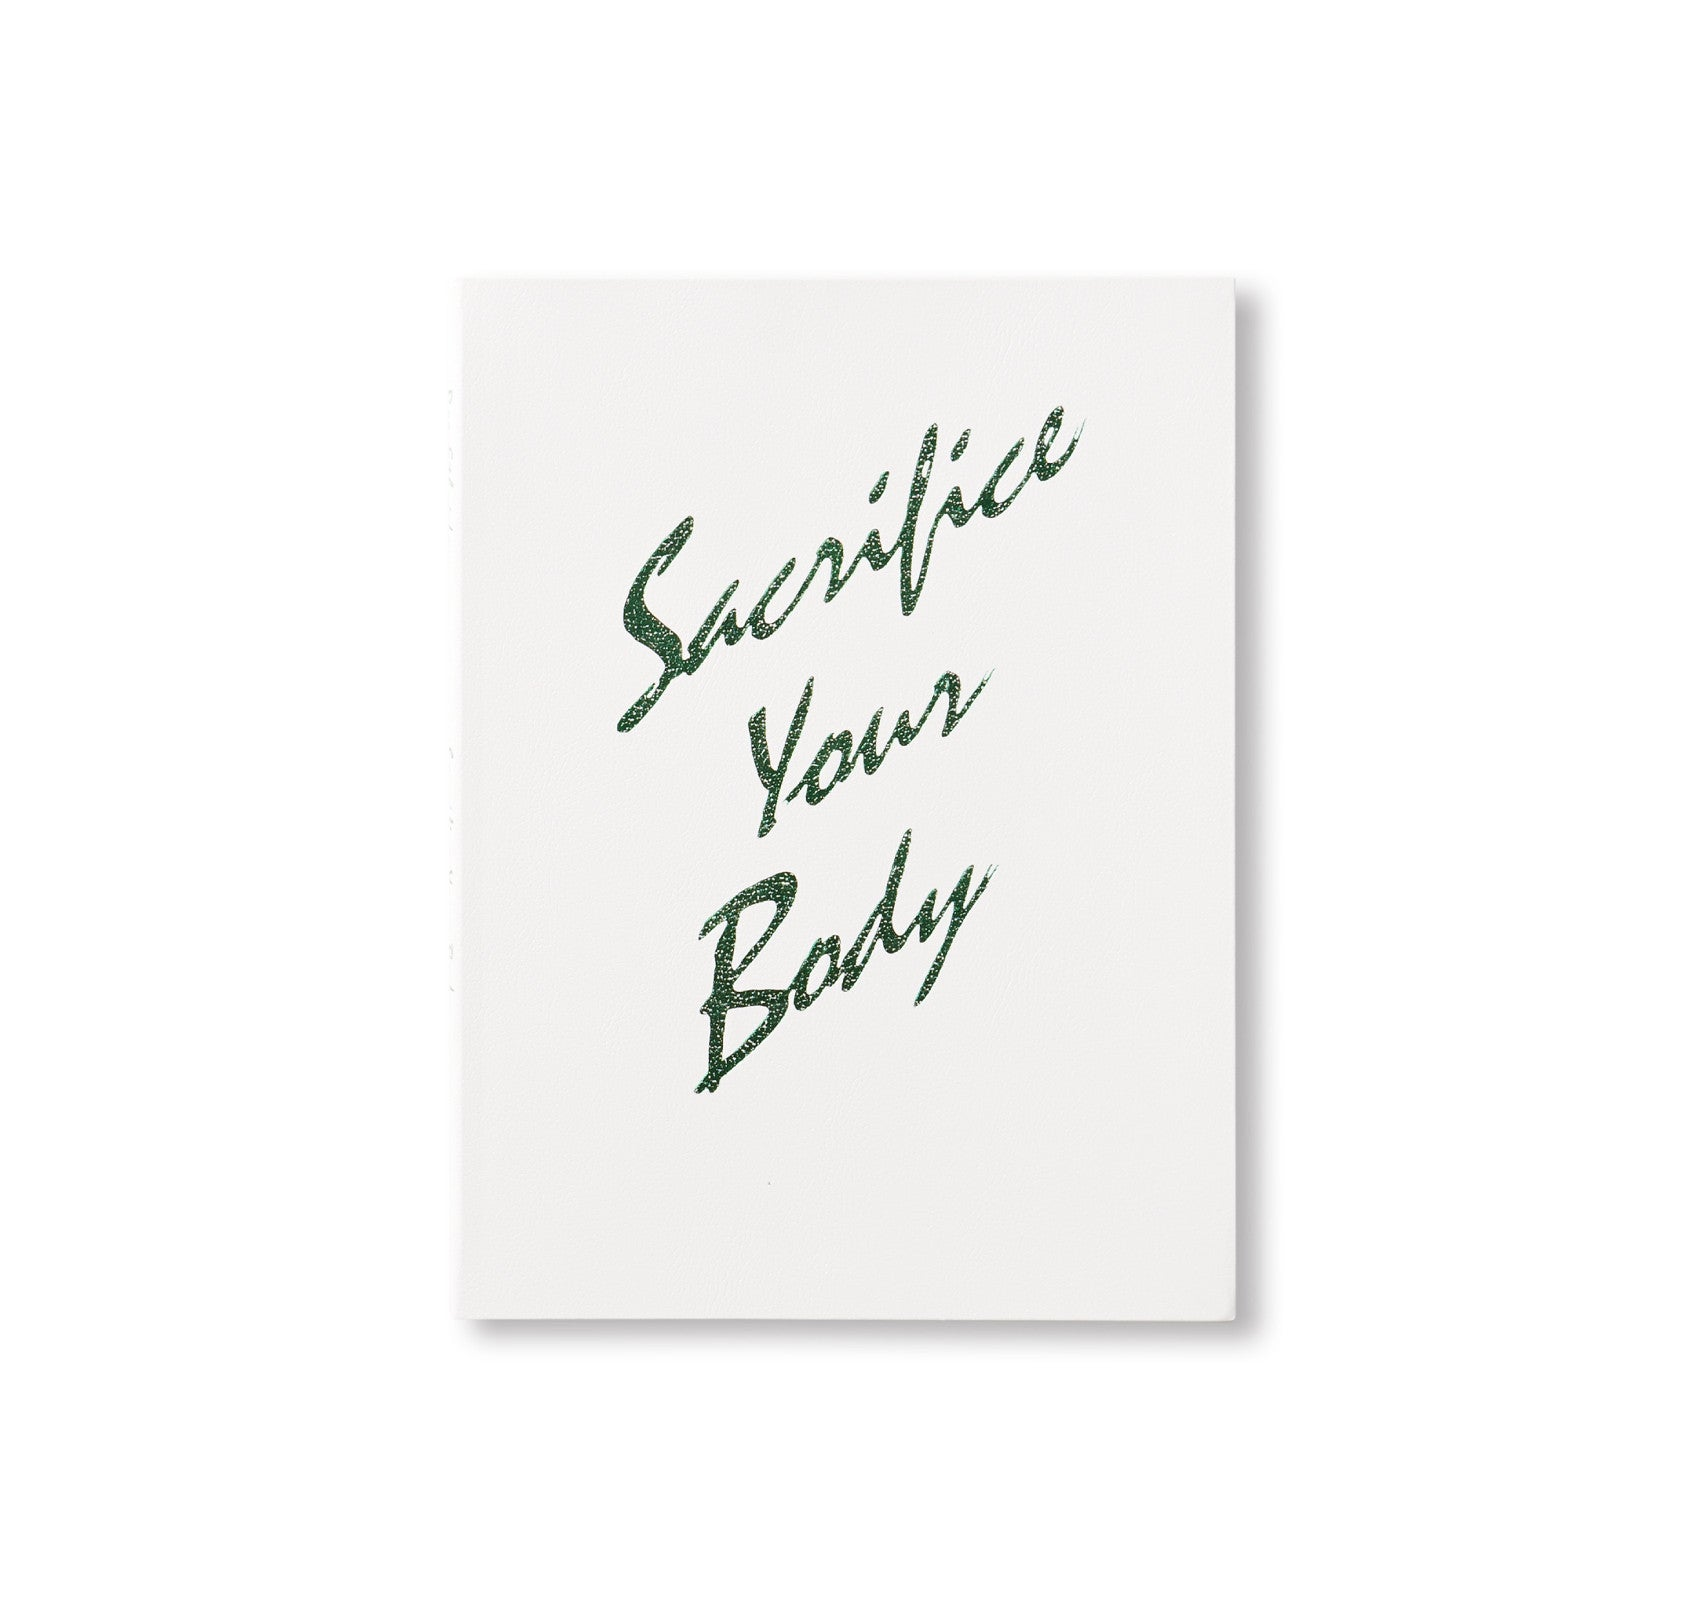 SACRIFICE YOUR BODY by Roe Ethridge [SIGNED]